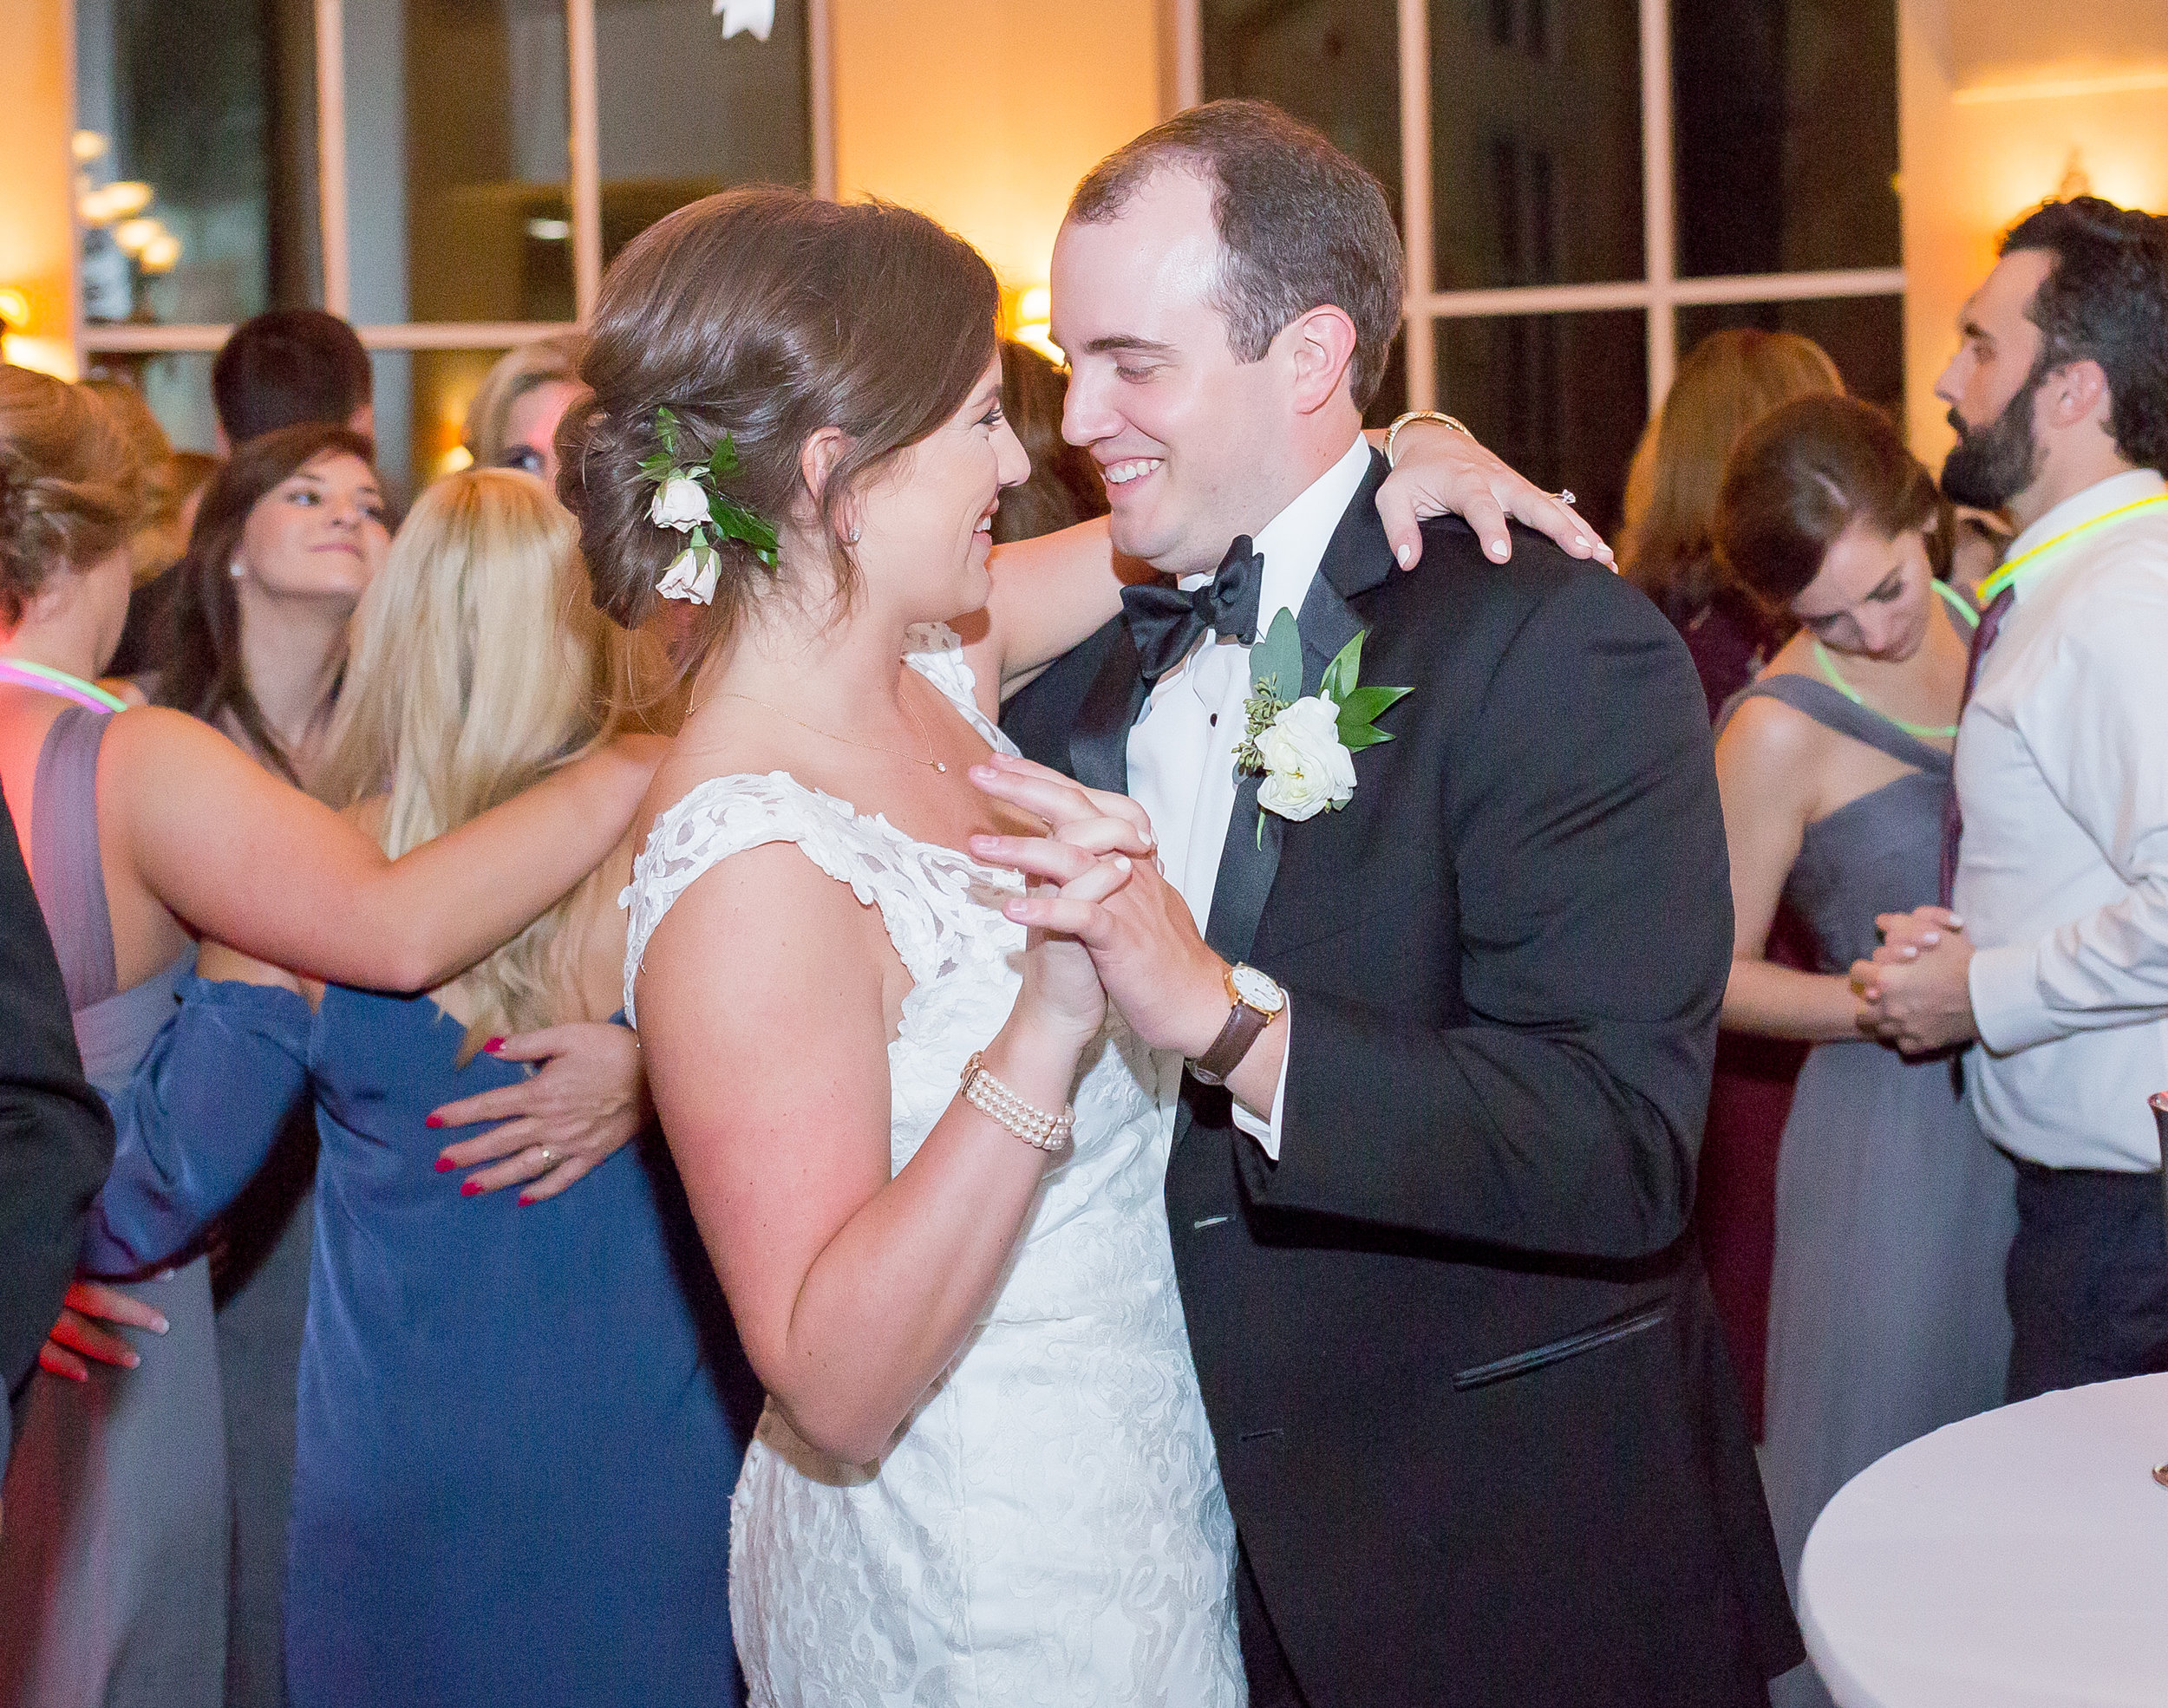 lauren&mark (804 of 938).jpg